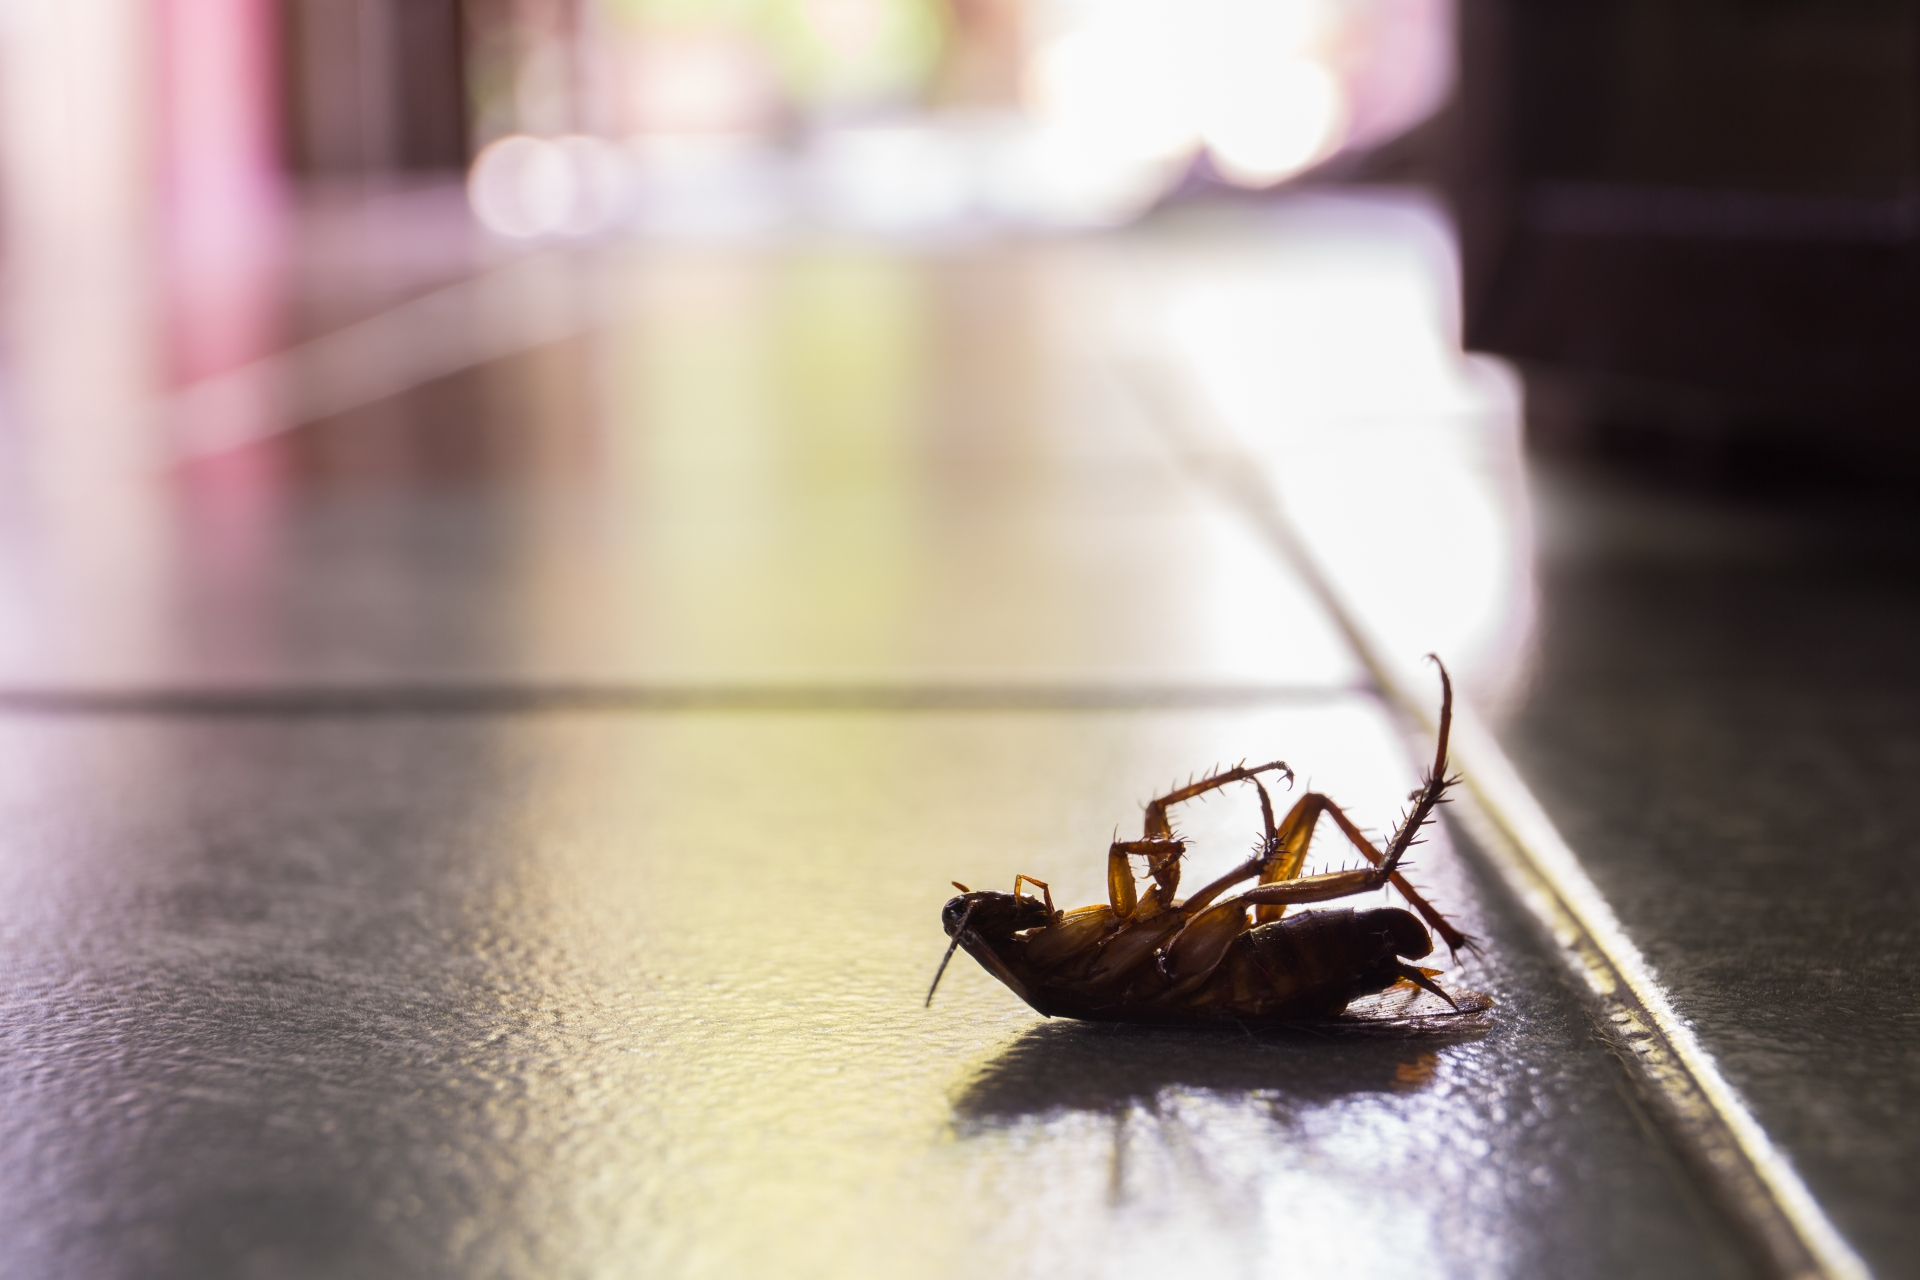 Cockroach Control, Pest Control in Stockley Park, UB11. Call Now 020 8166 9746